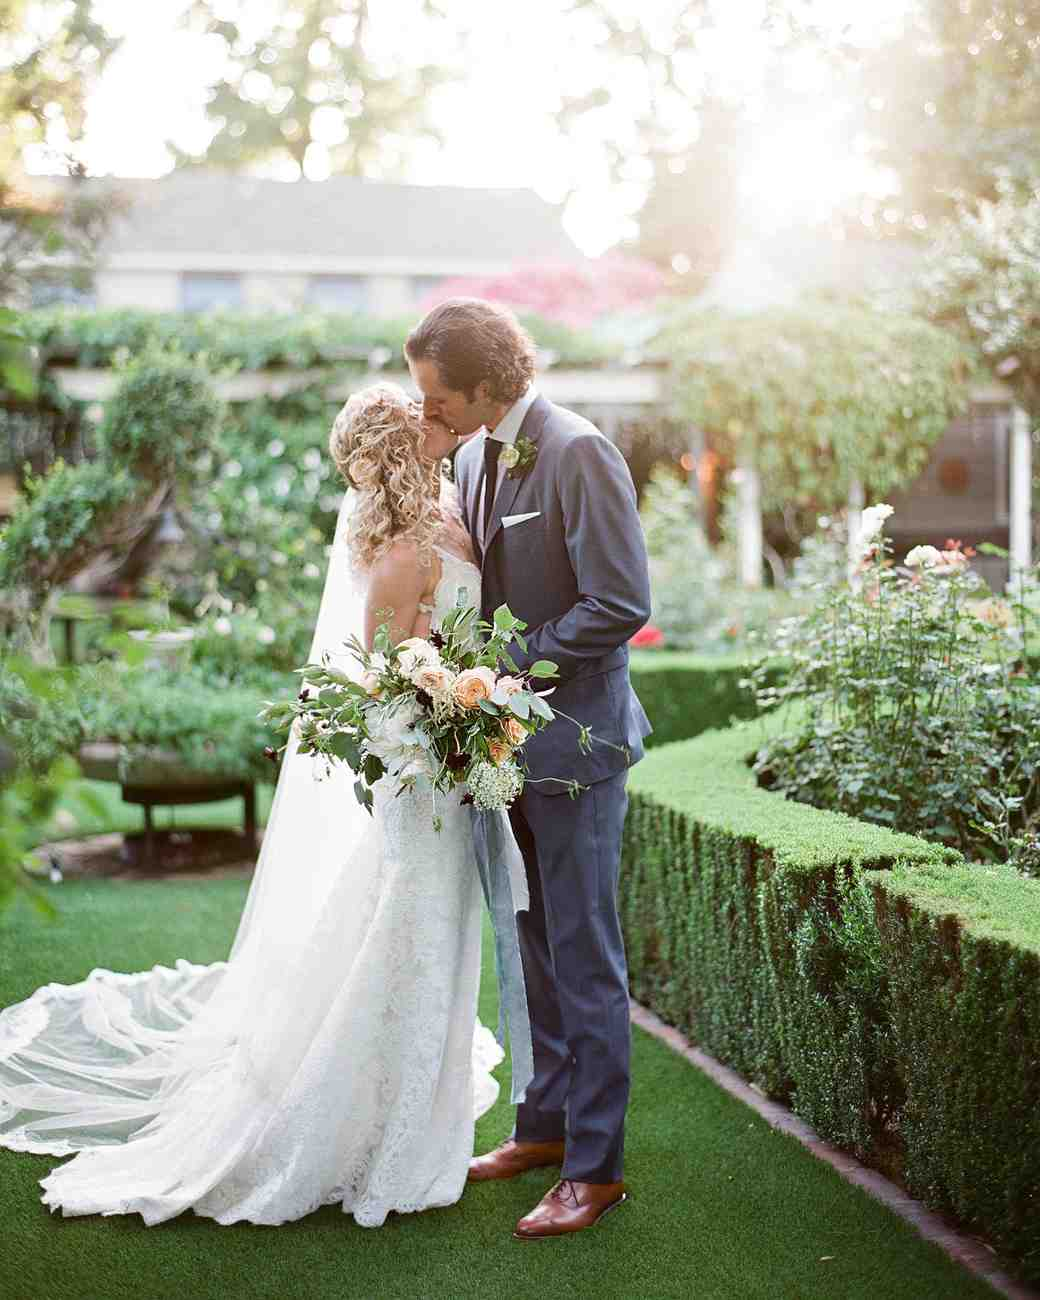 A Fairytale Garden Wedding In The Bride's Grandma's